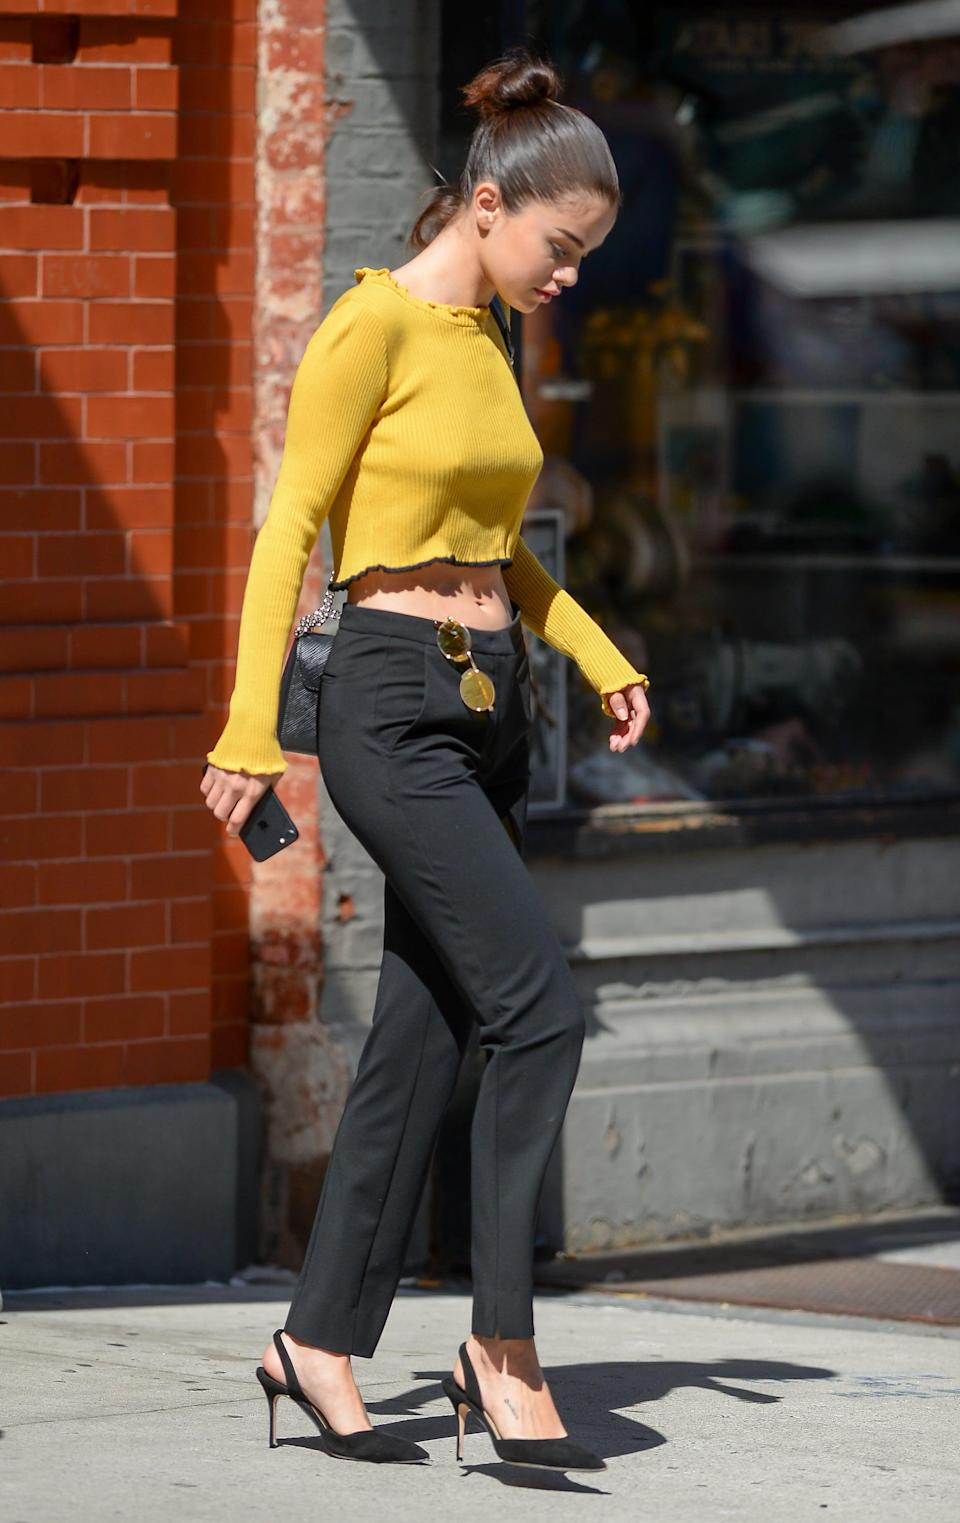 """<p>Selena reminded us all that a <a href=""""https://www.popsugar.com/fashion/Selena-Gomez-Wearing-Yellow-Crop-Top-44081586"""" class=""""link rapid-noclick-resp"""" rel=""""nofollow noopener"""" target=""""_blank"""" data-ylk=""""slk:flirty crop top"""">flirty crop top</a> can go a long way on the streets of Soho in September 2017. You'll notice her marigold For Love &amp; Lemons shirt first, but trousers never looked so sexy and '90s inspired! Clip your shades on the waistband and wear sharp slingbacks like Selena, and you'll be turning up the heat.</p>"""